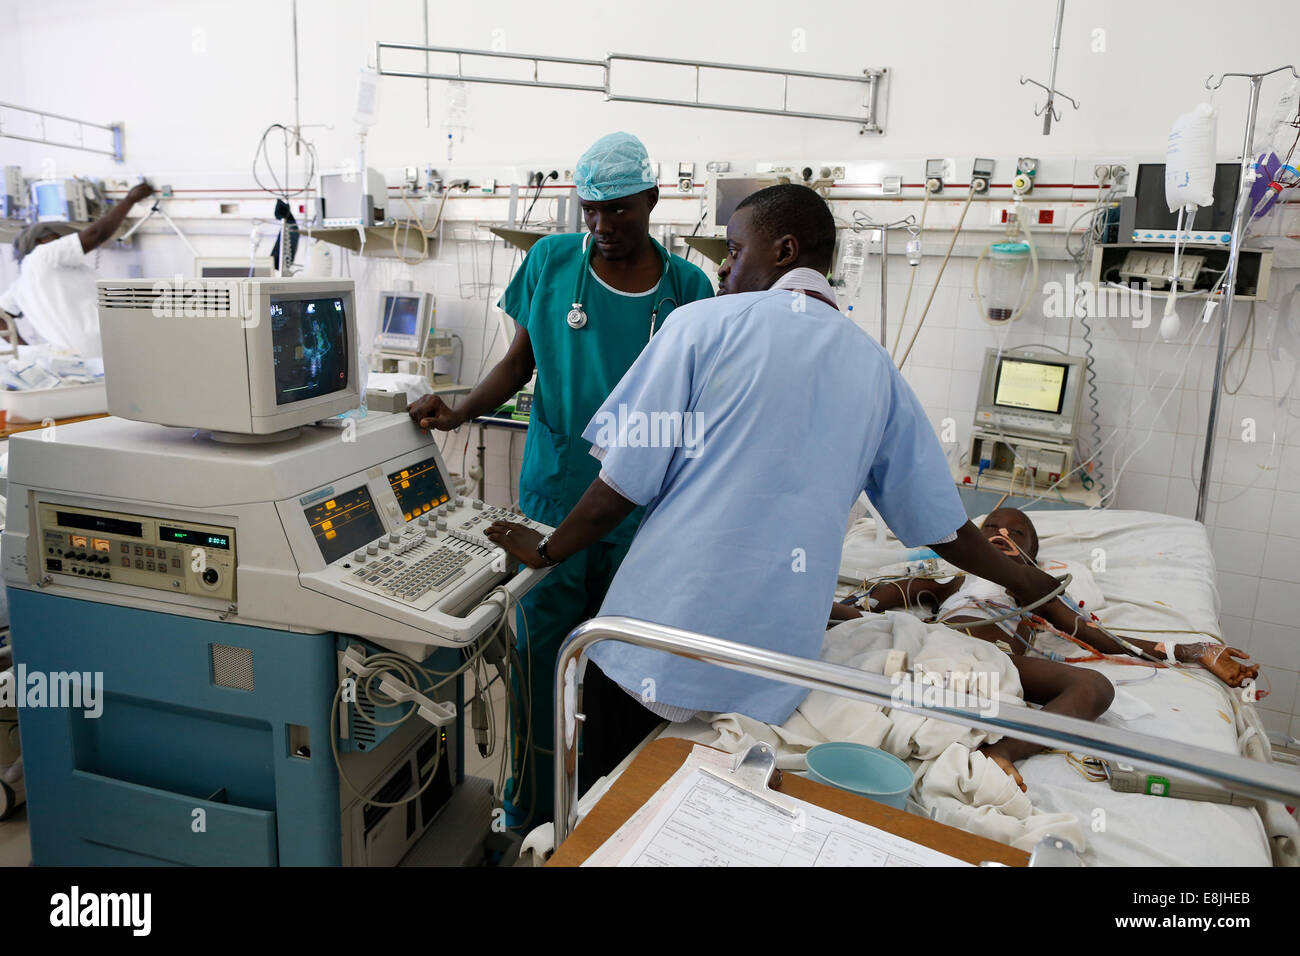 Echography. Intensive care unit. Fann hospital. - Stock Image